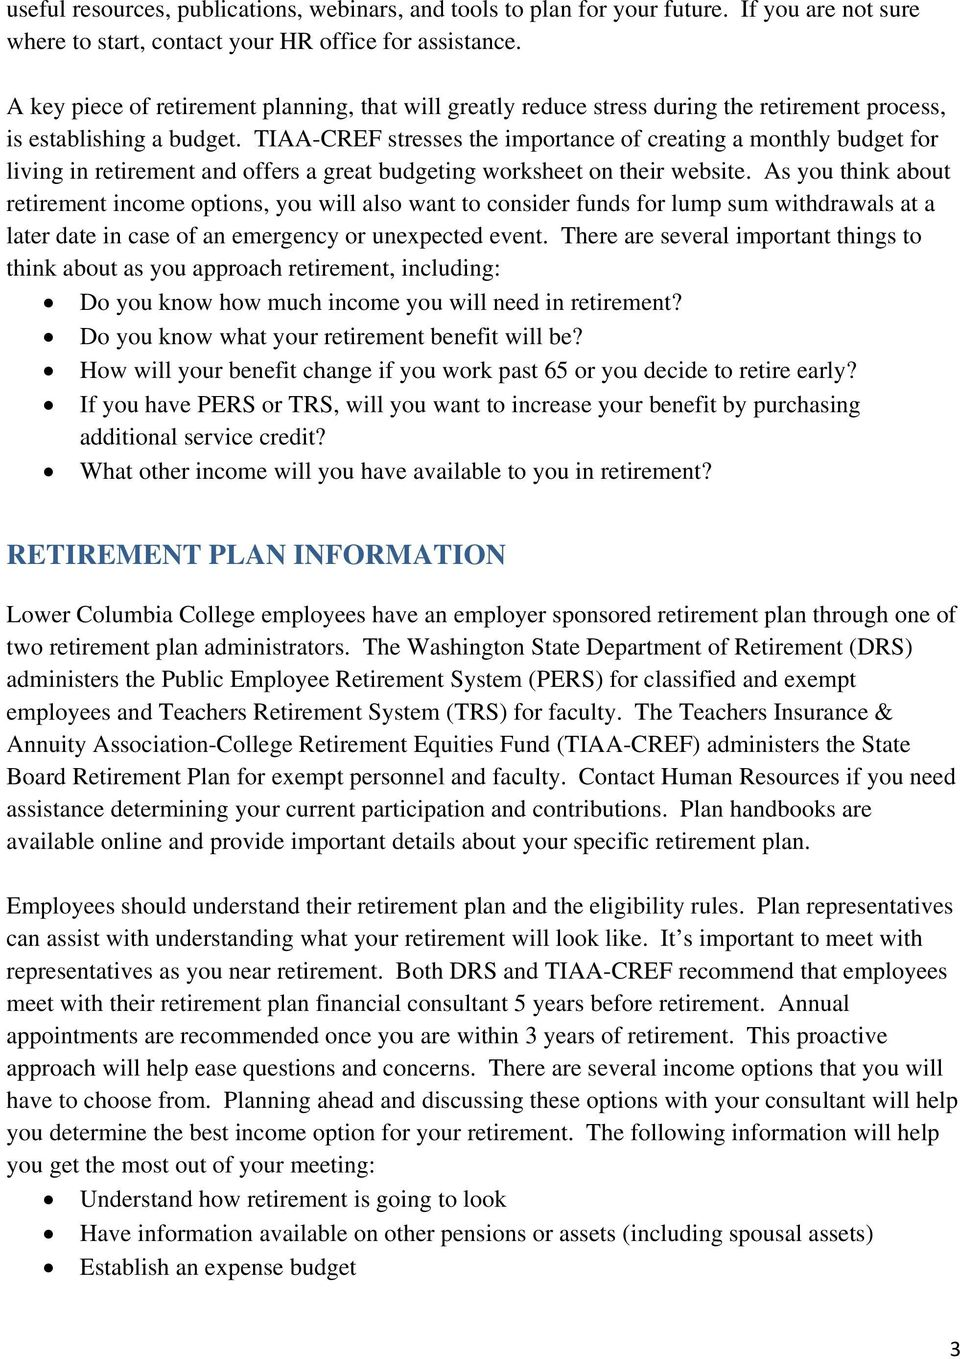 TIAA-CREF stresses the importance of creating a monthly budget for living in retirement and offers a great budgeting worksheet on their website.